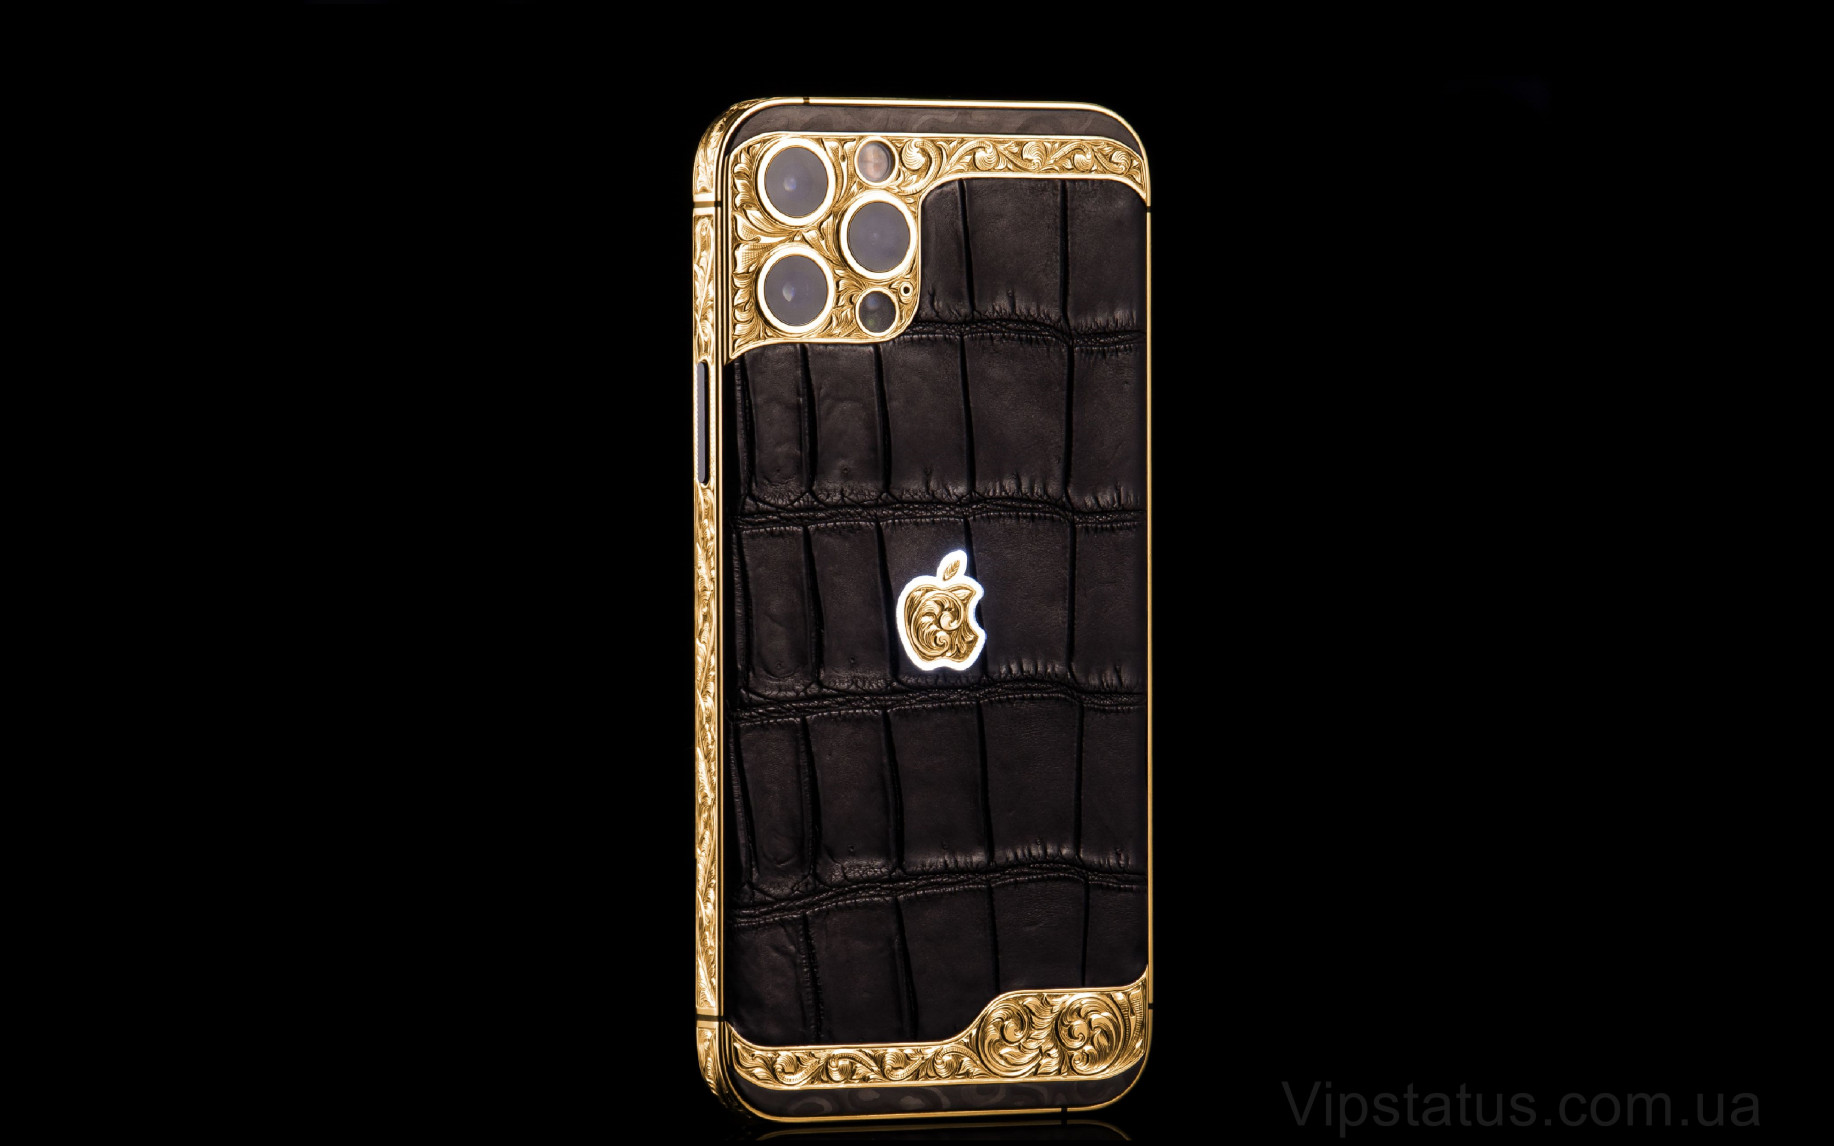 Elite Gold Lord IPHONE 12 PRO MAX 512 GB Gold Lord IPHONE 12 PRO MAX 512 GB image 1